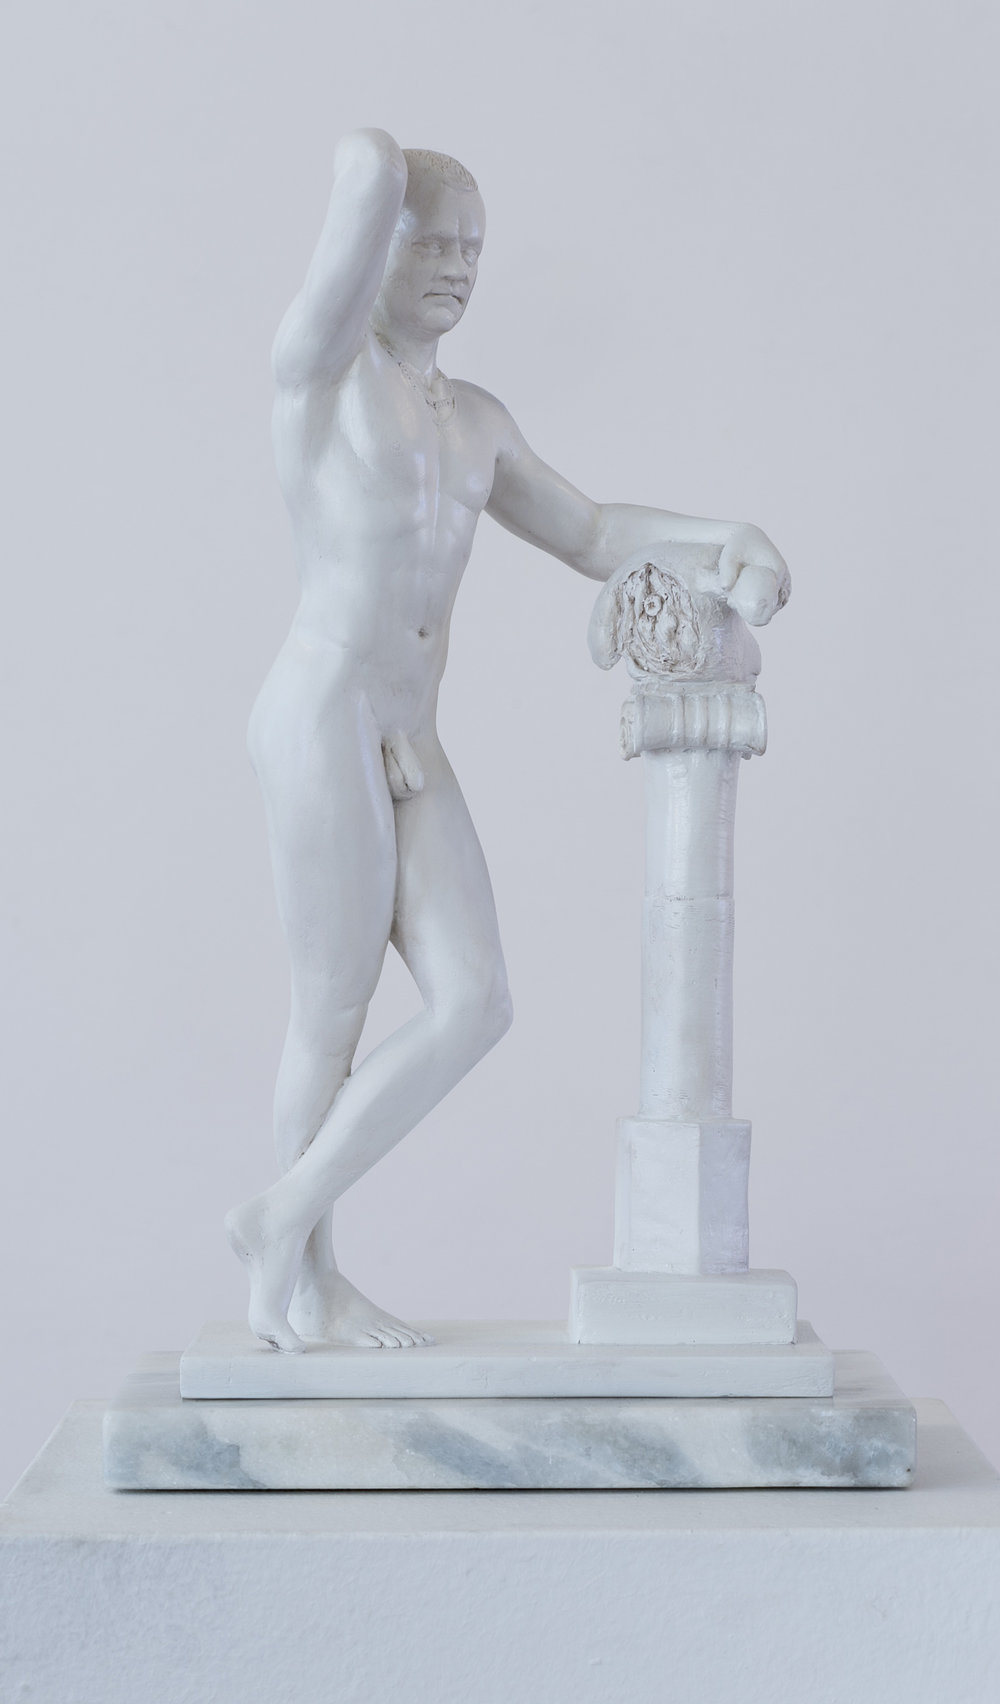 Jonathan van der Walt  Striving for the Idea(l): Damien Hirst  Resin, edition of 18  23 x 18 x 48 cm